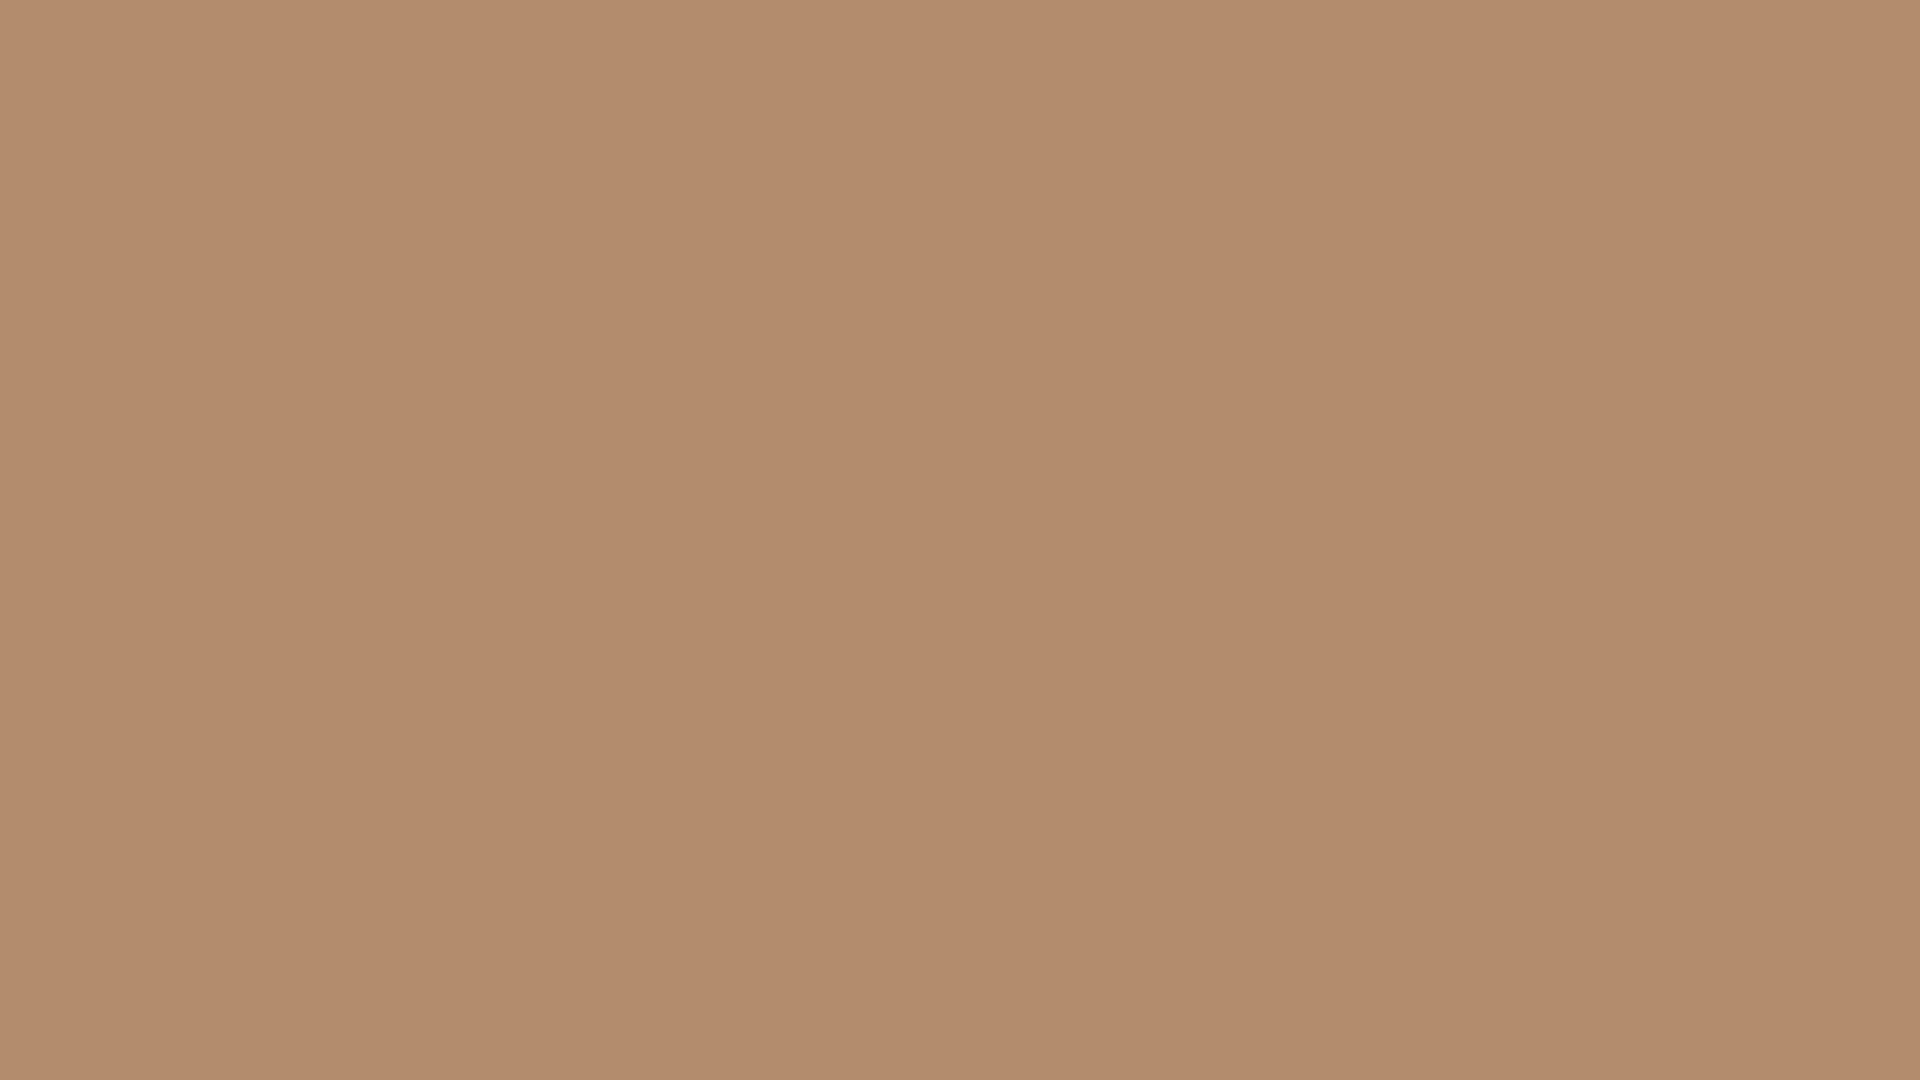 Light Brown Background Download Free Full Hd Wallpapers